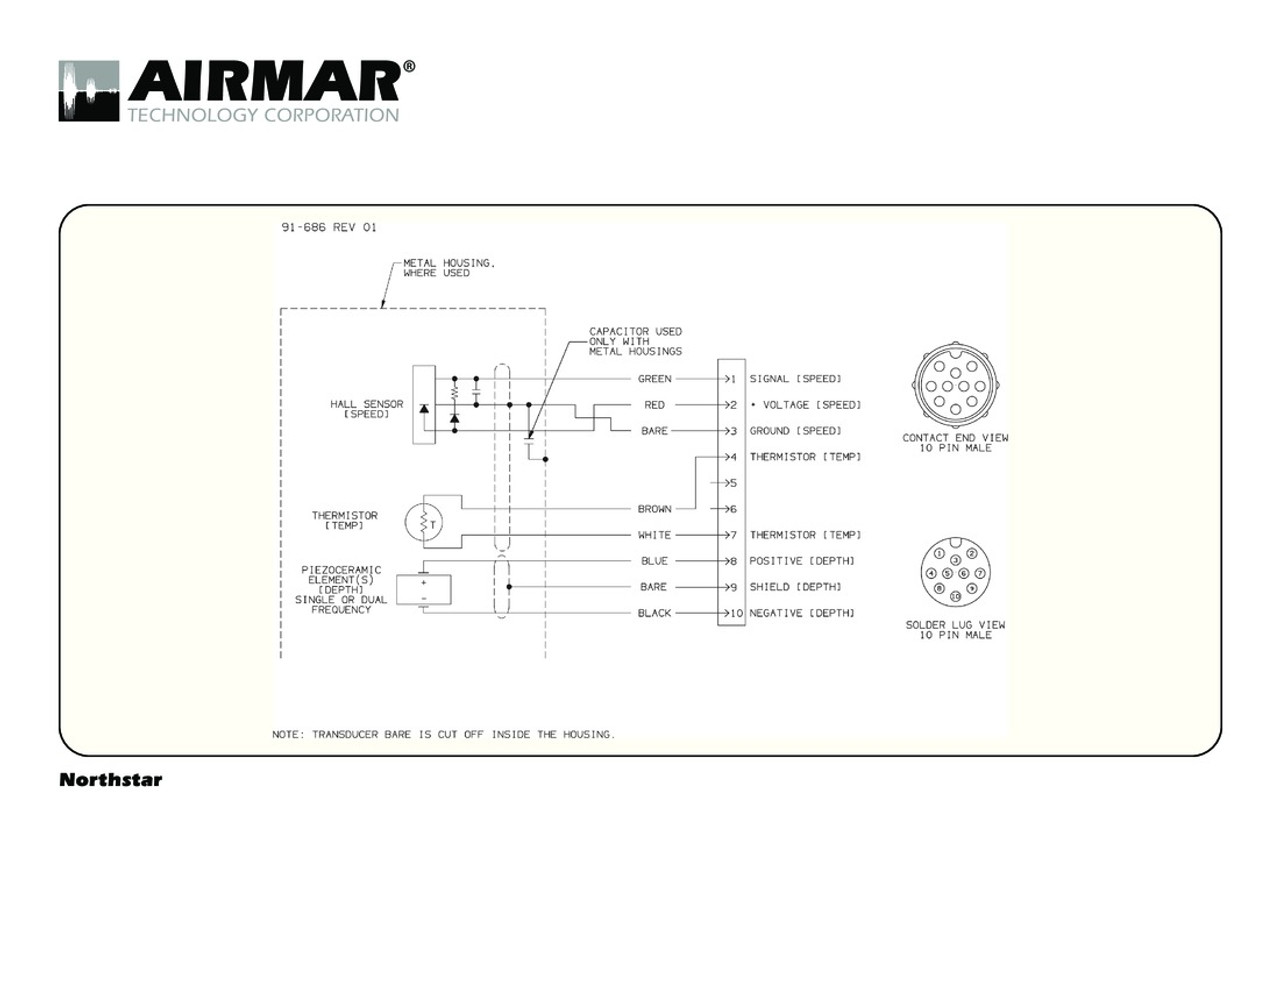 airmar wiring diagram northstar 600w 10 pin blue bottle marine rh bluebottlemarine com